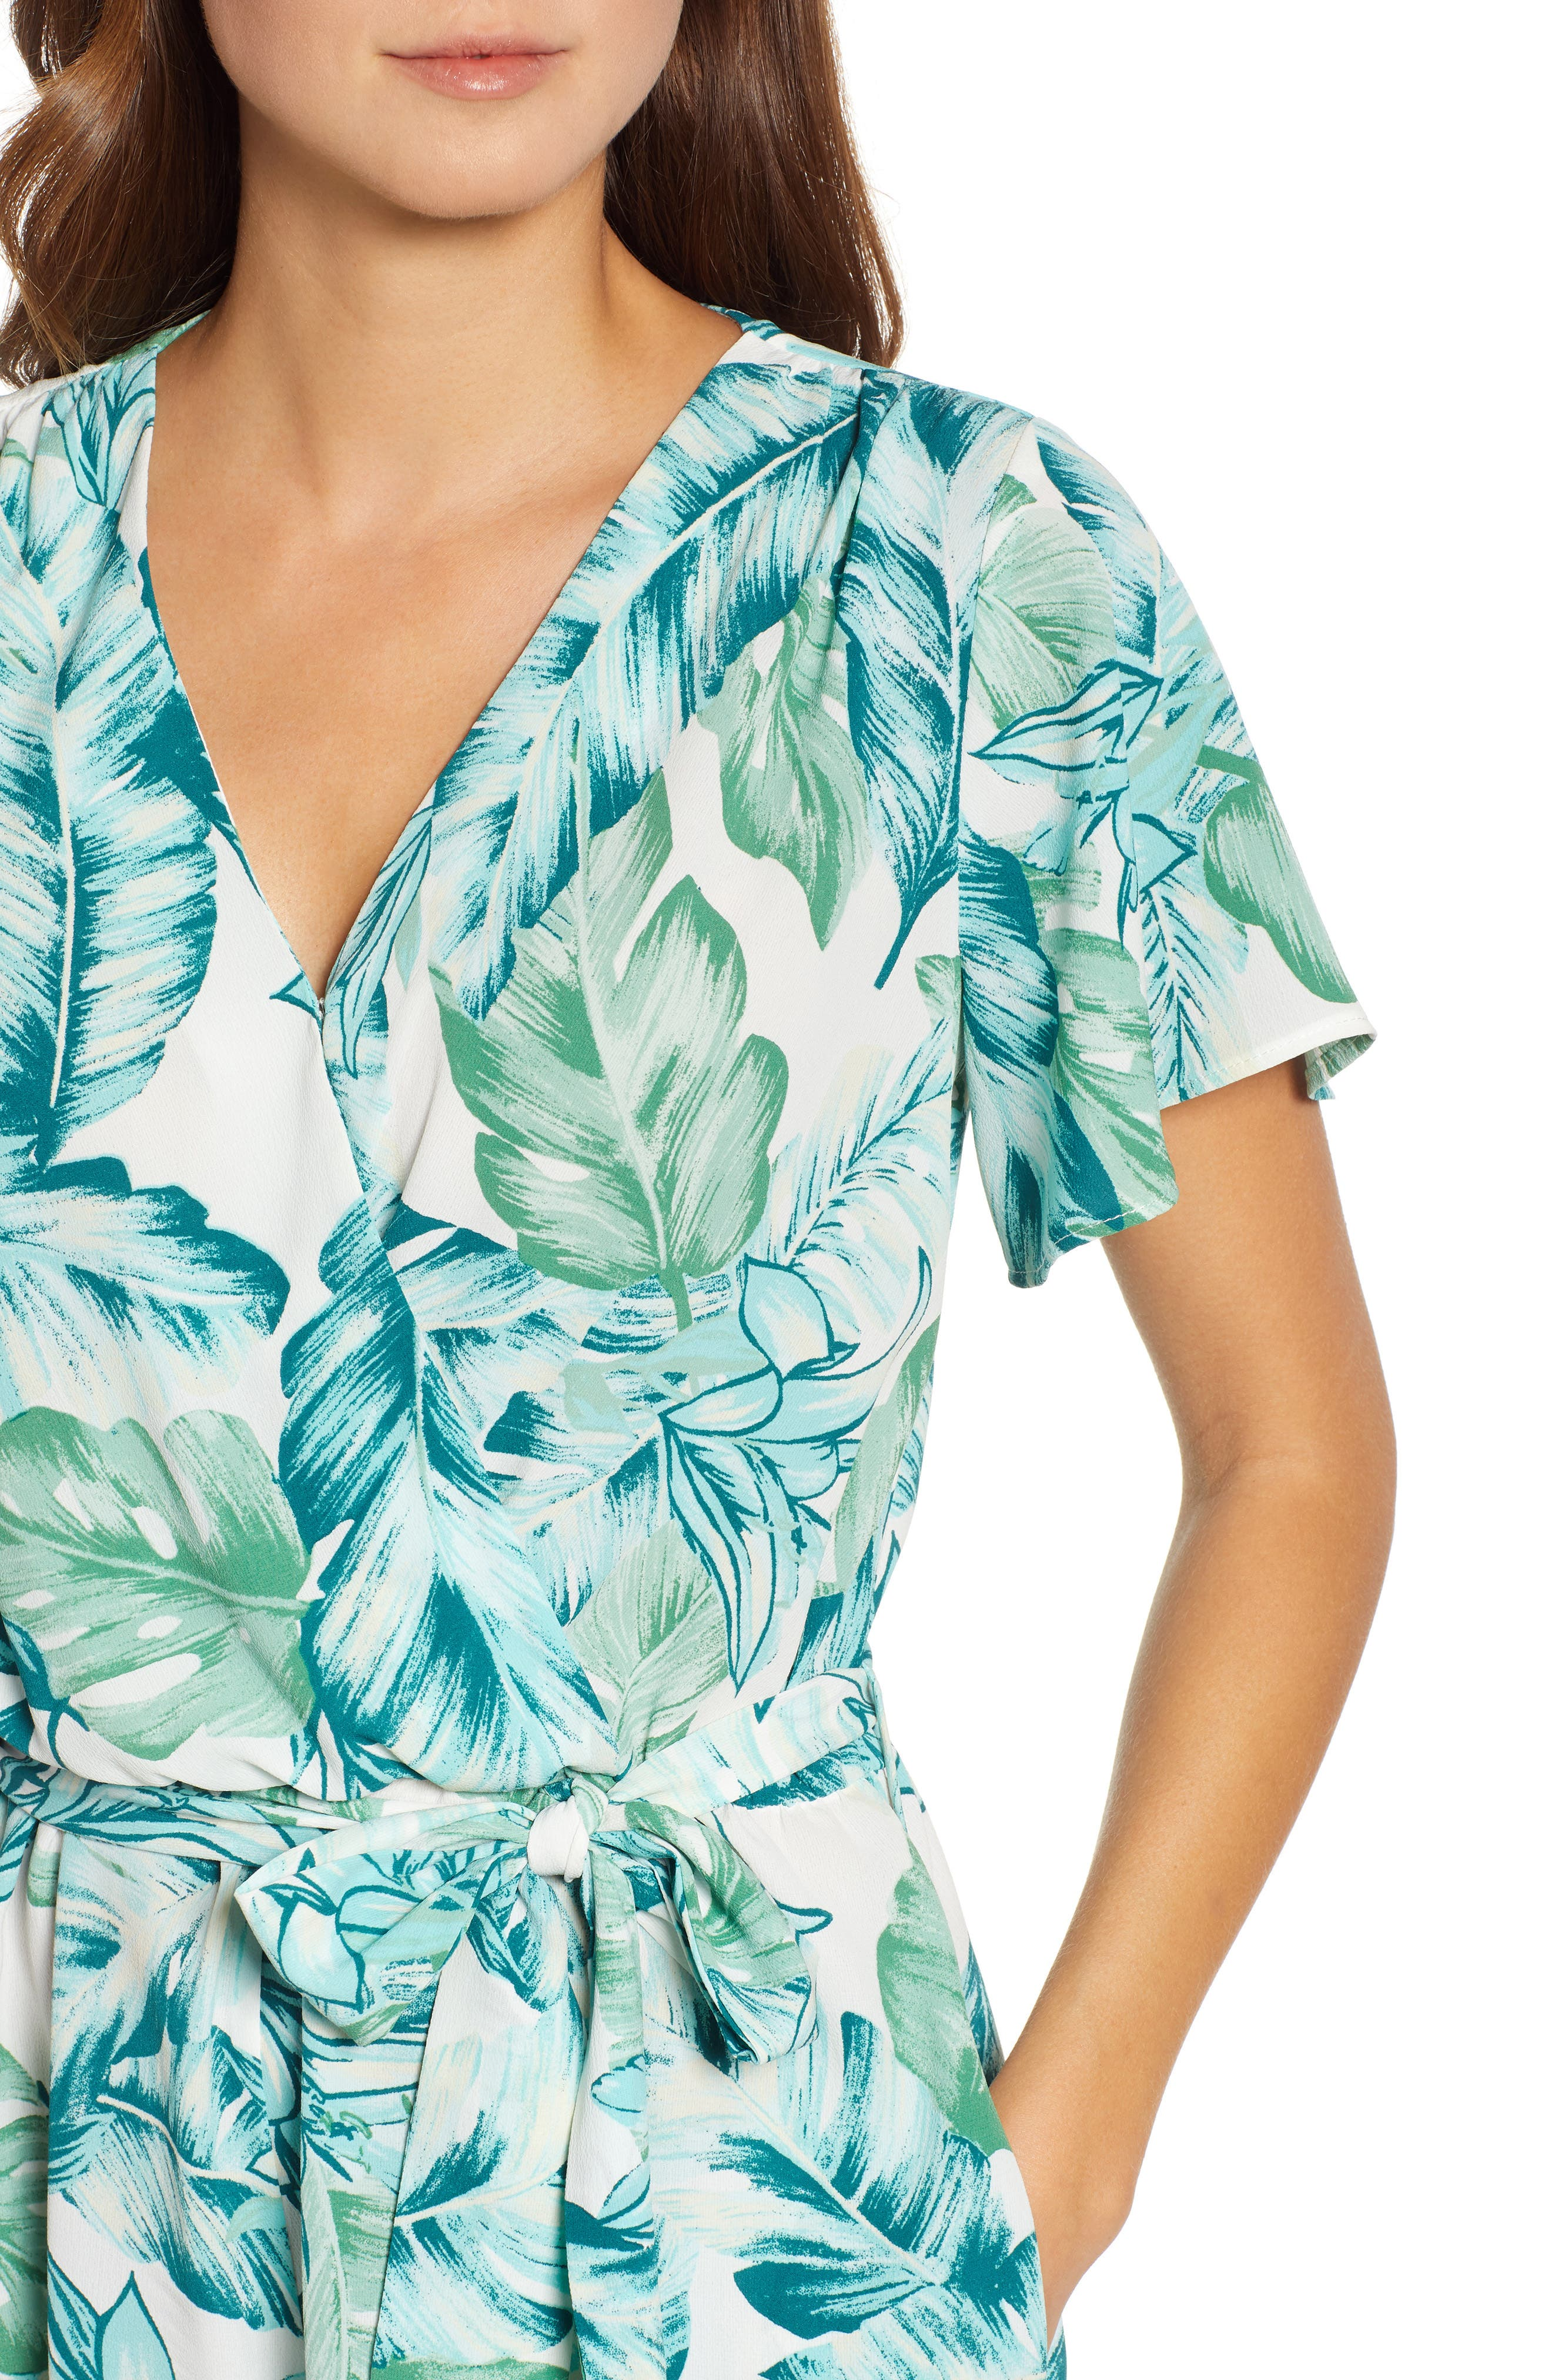 GIBSON, x Hi Sugarplum! Catalina Ruffle Hem Romper, Alternate thumbnail 5, color, PALM